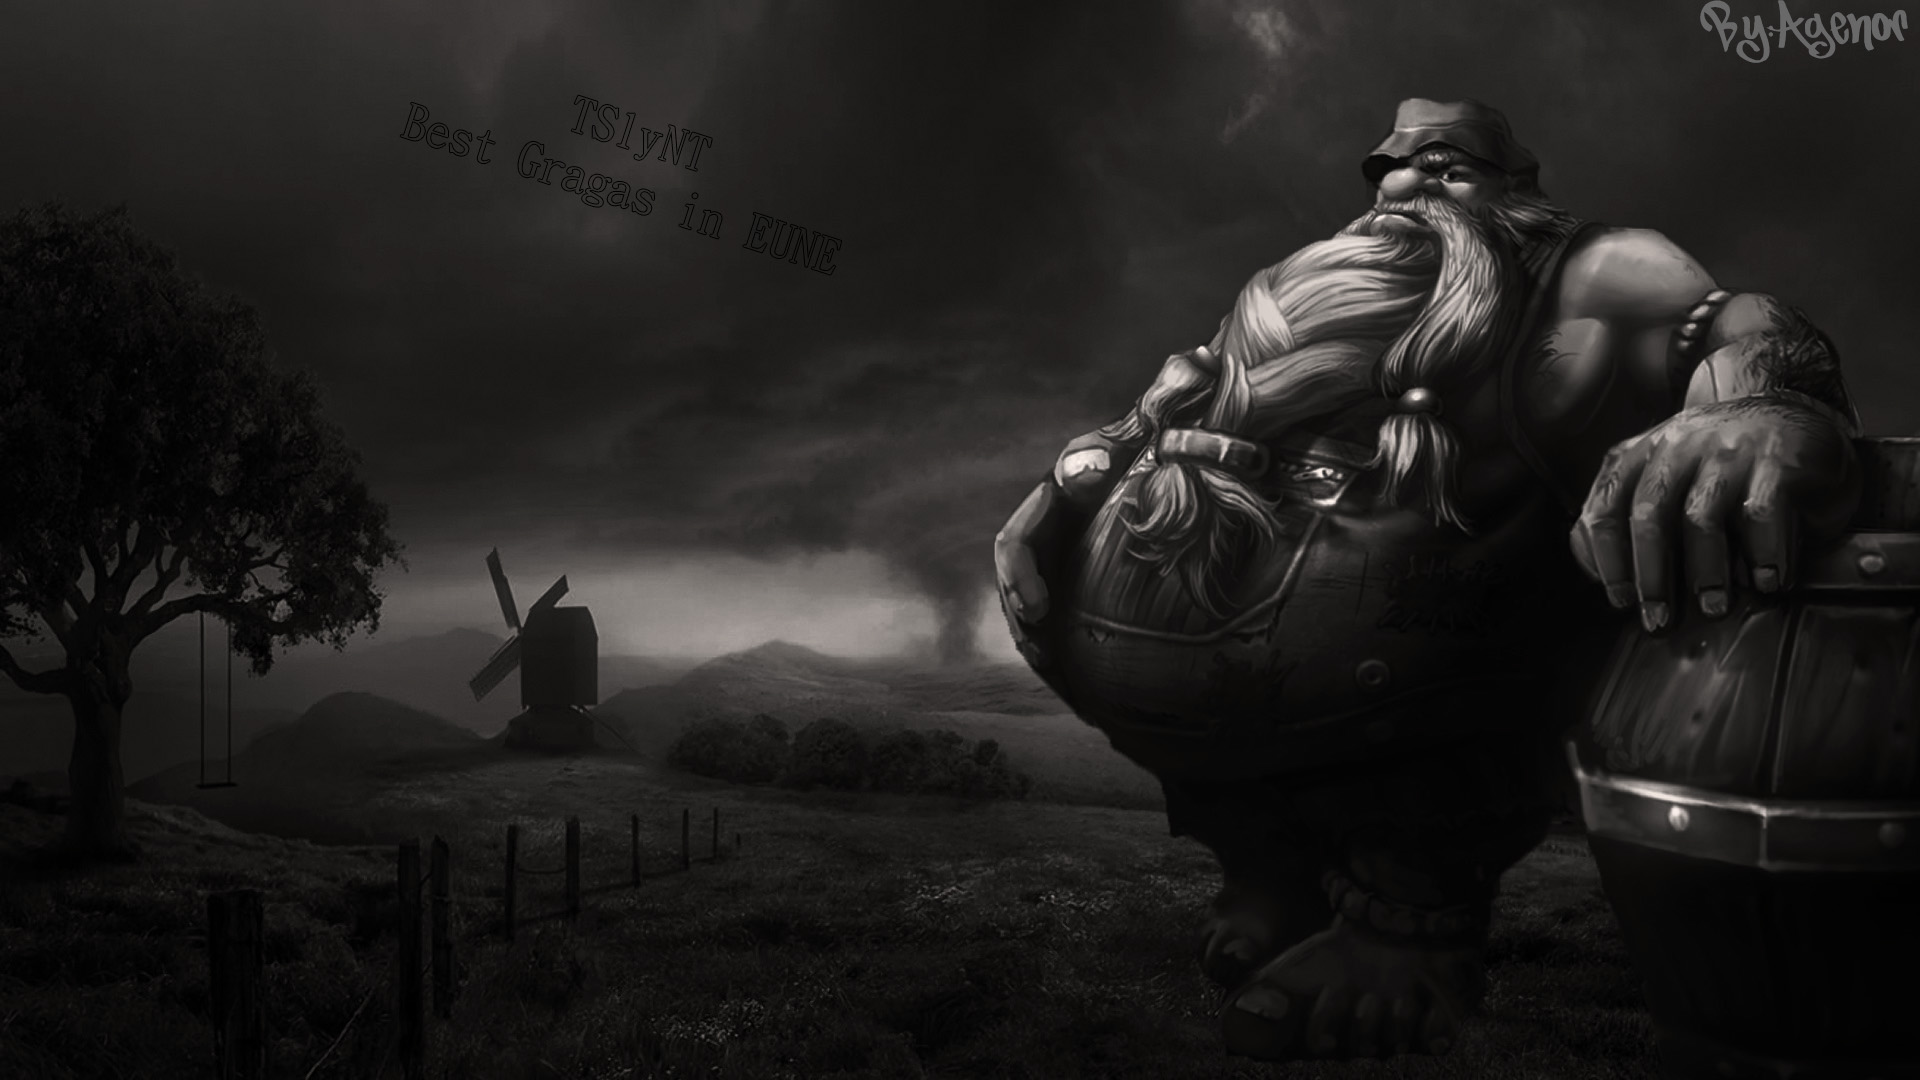 Gragas HD Wallpaper for my friend TSlyNT by Agenorhun 1920x1080